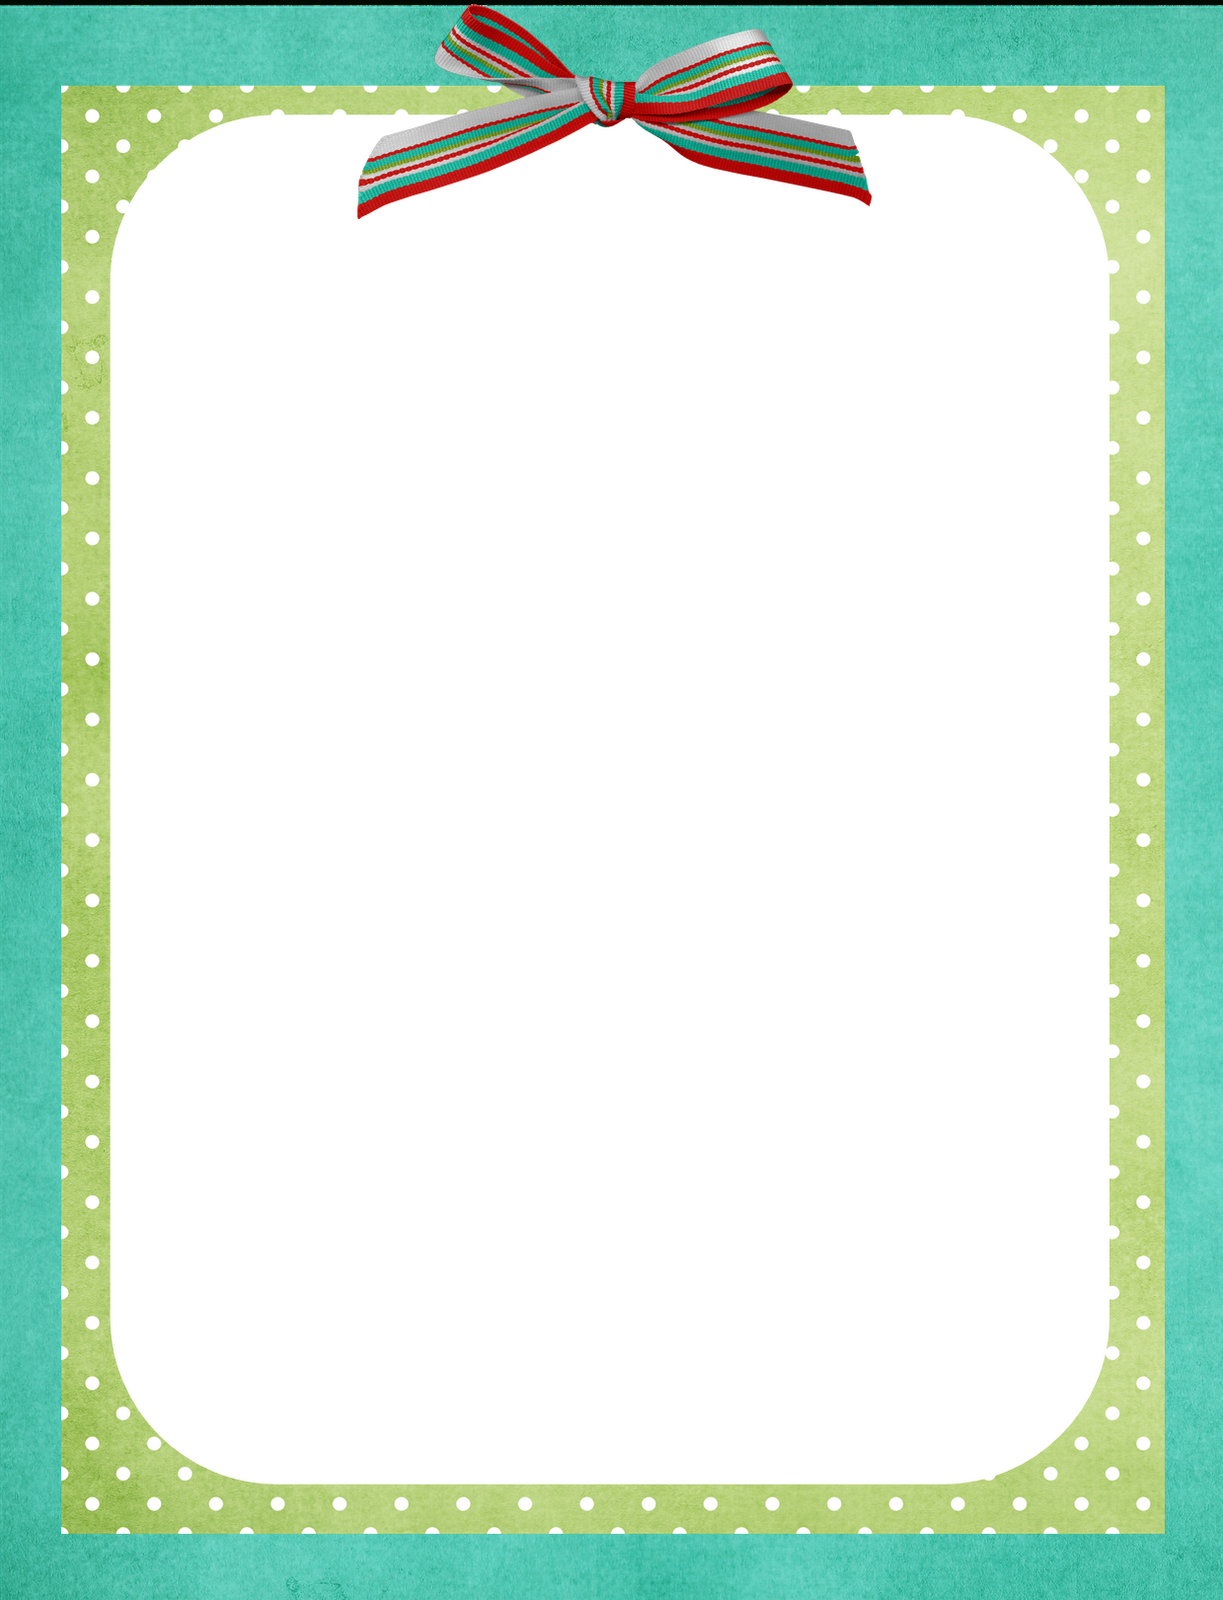 Free Border Template | All Things Nice | Border Templates, Borders - Free Printable Baby Borders For Paper